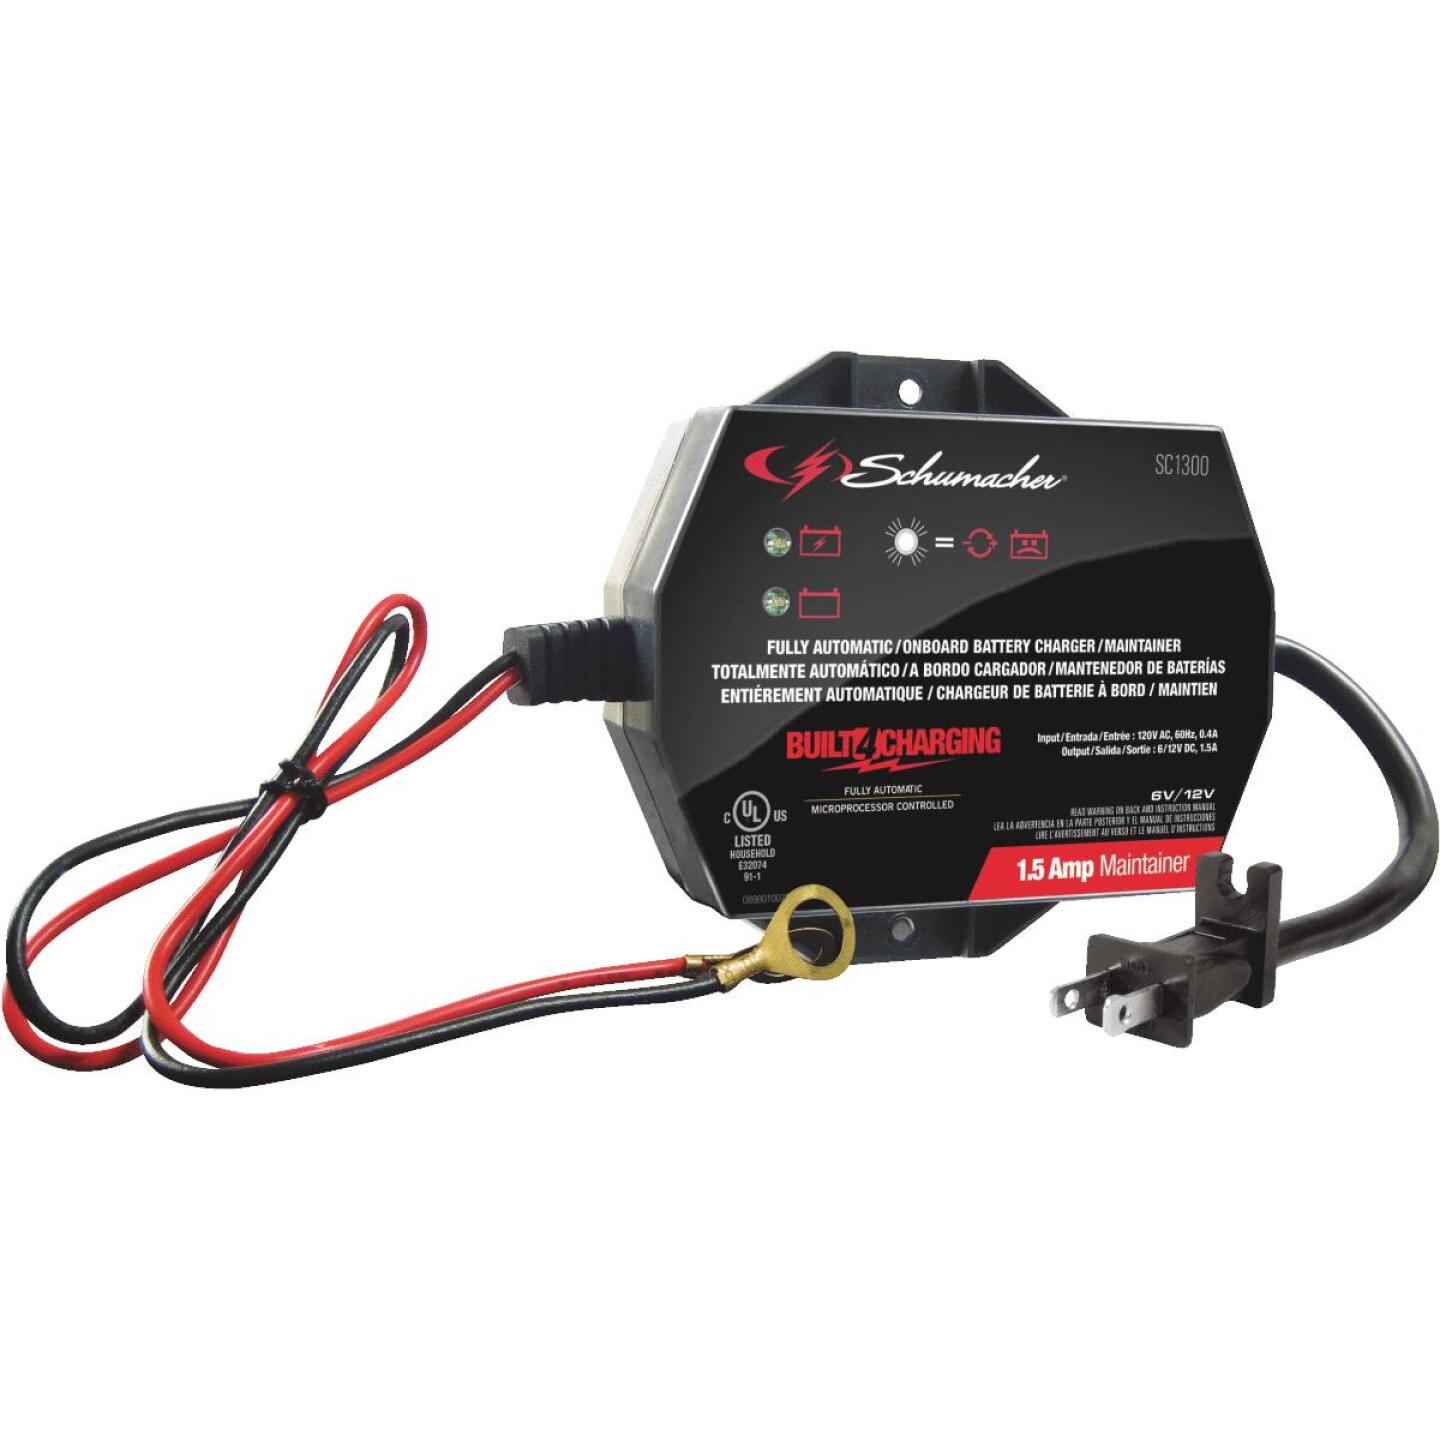 Schumacher Automatic 12V 1.5A Auto Battery Charger/Maintainer Image 1